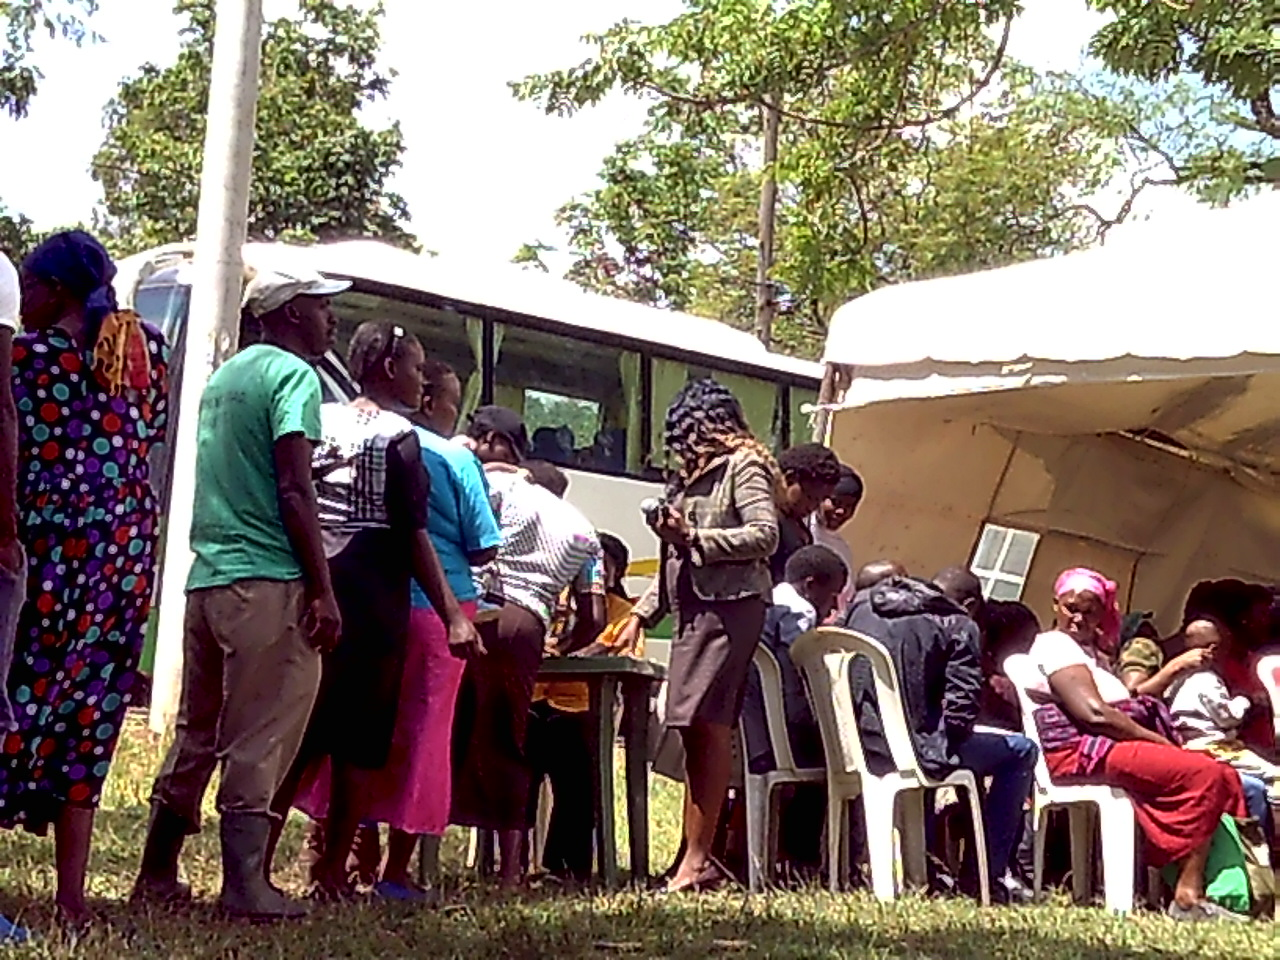 Residents lining up to register before embarking in the debates on development projects